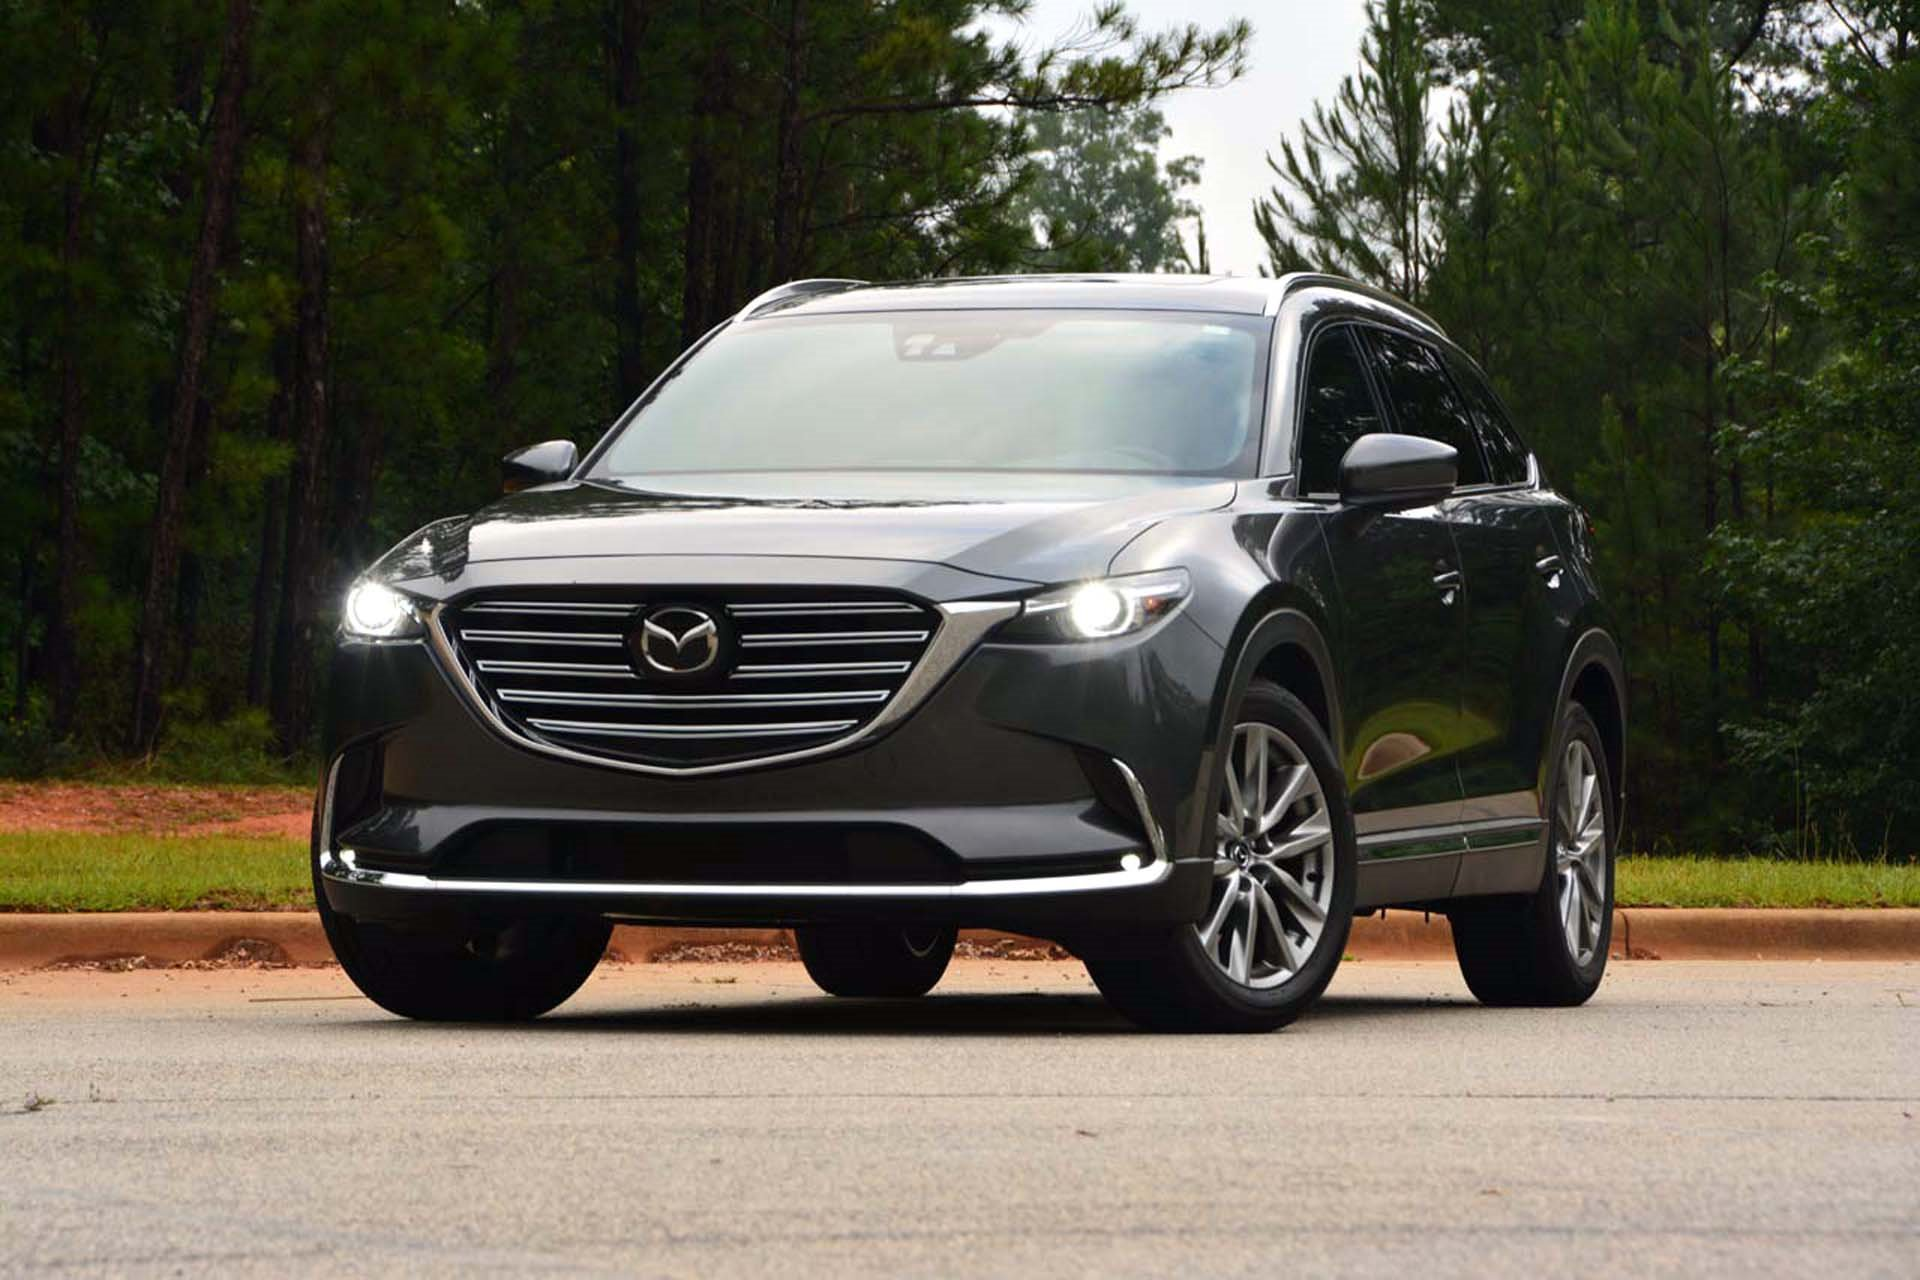 New 2020 Mazda-CX-9 Touring CX-9 Touring for sale $37,130 at M and V Leasing in Brooklyn NY 11223 1